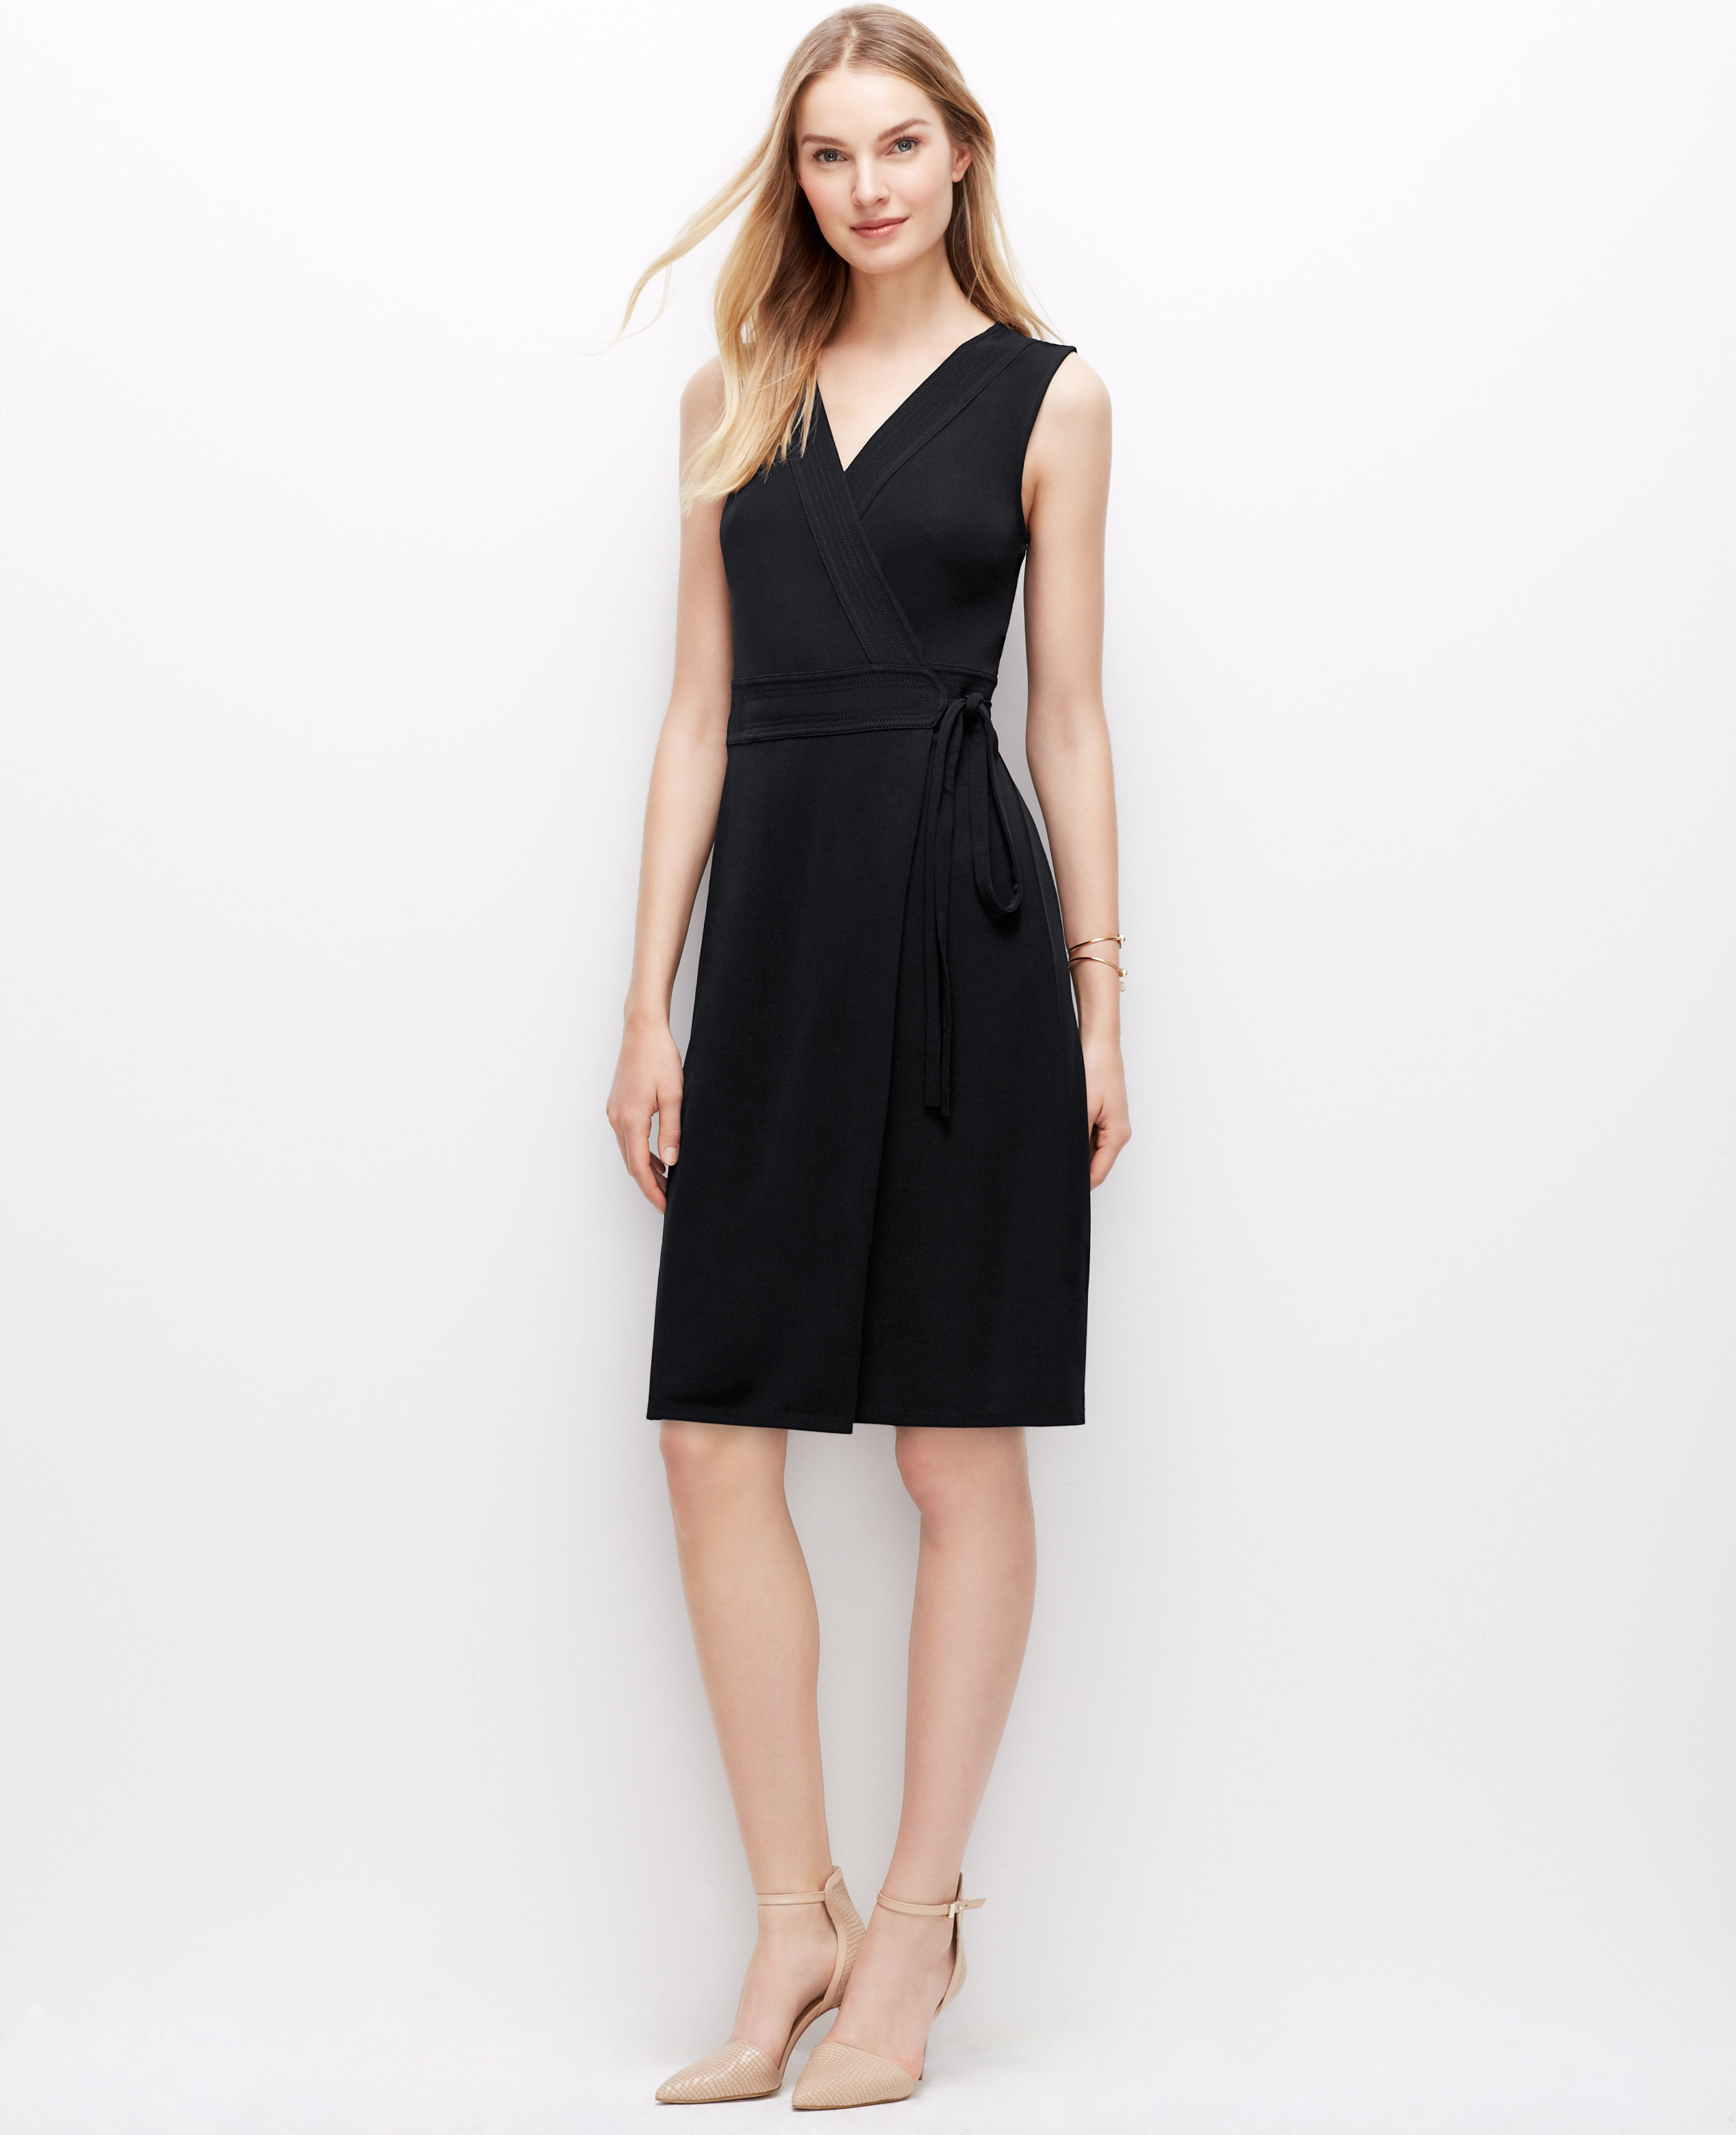 Sleeveless Wrap Dresses